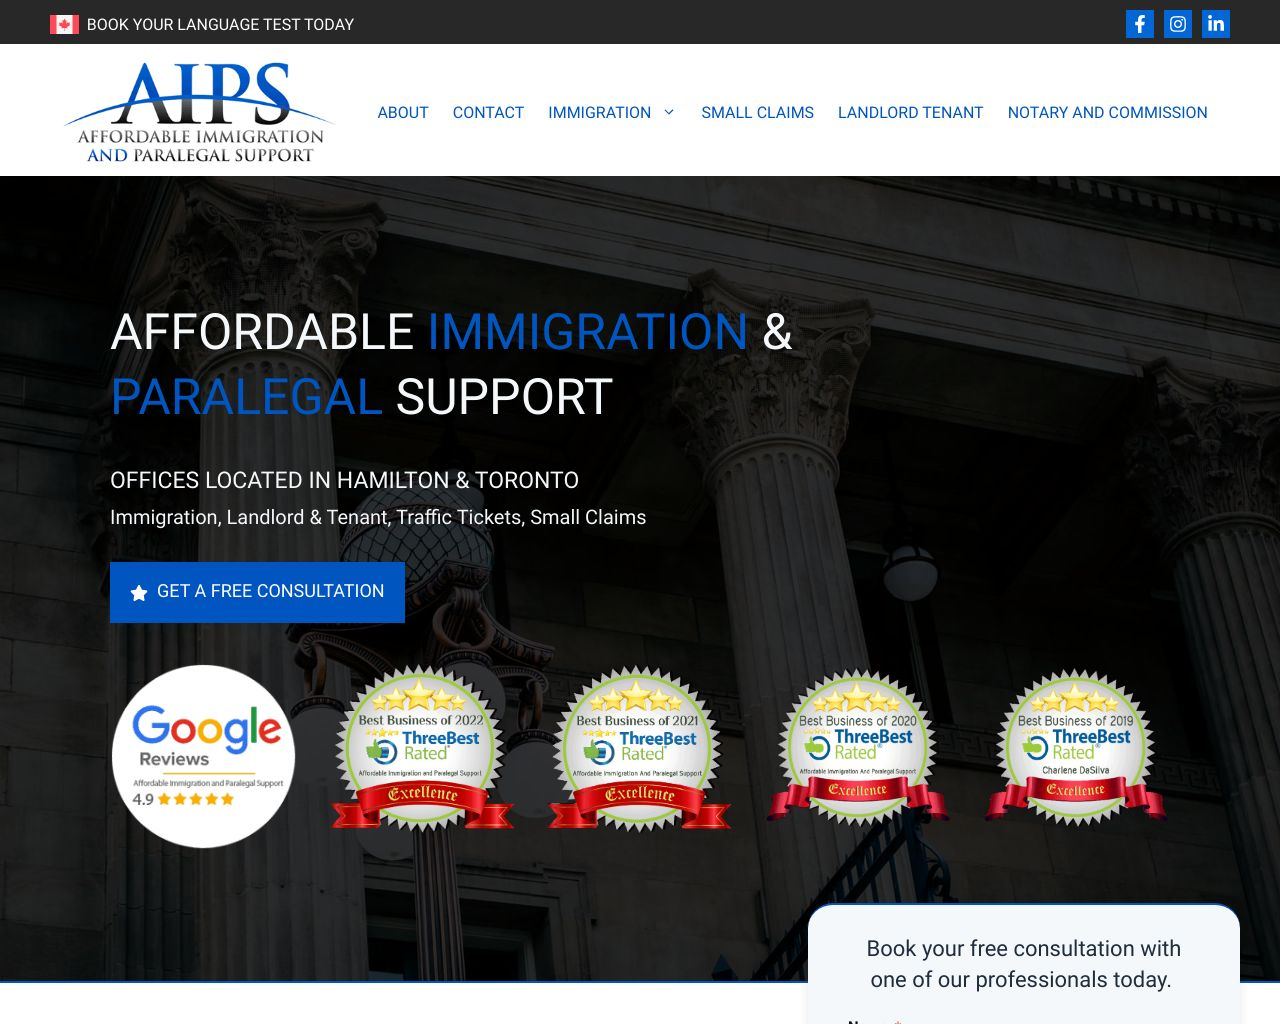 Website: Affordable Immigration and Paralegal Support